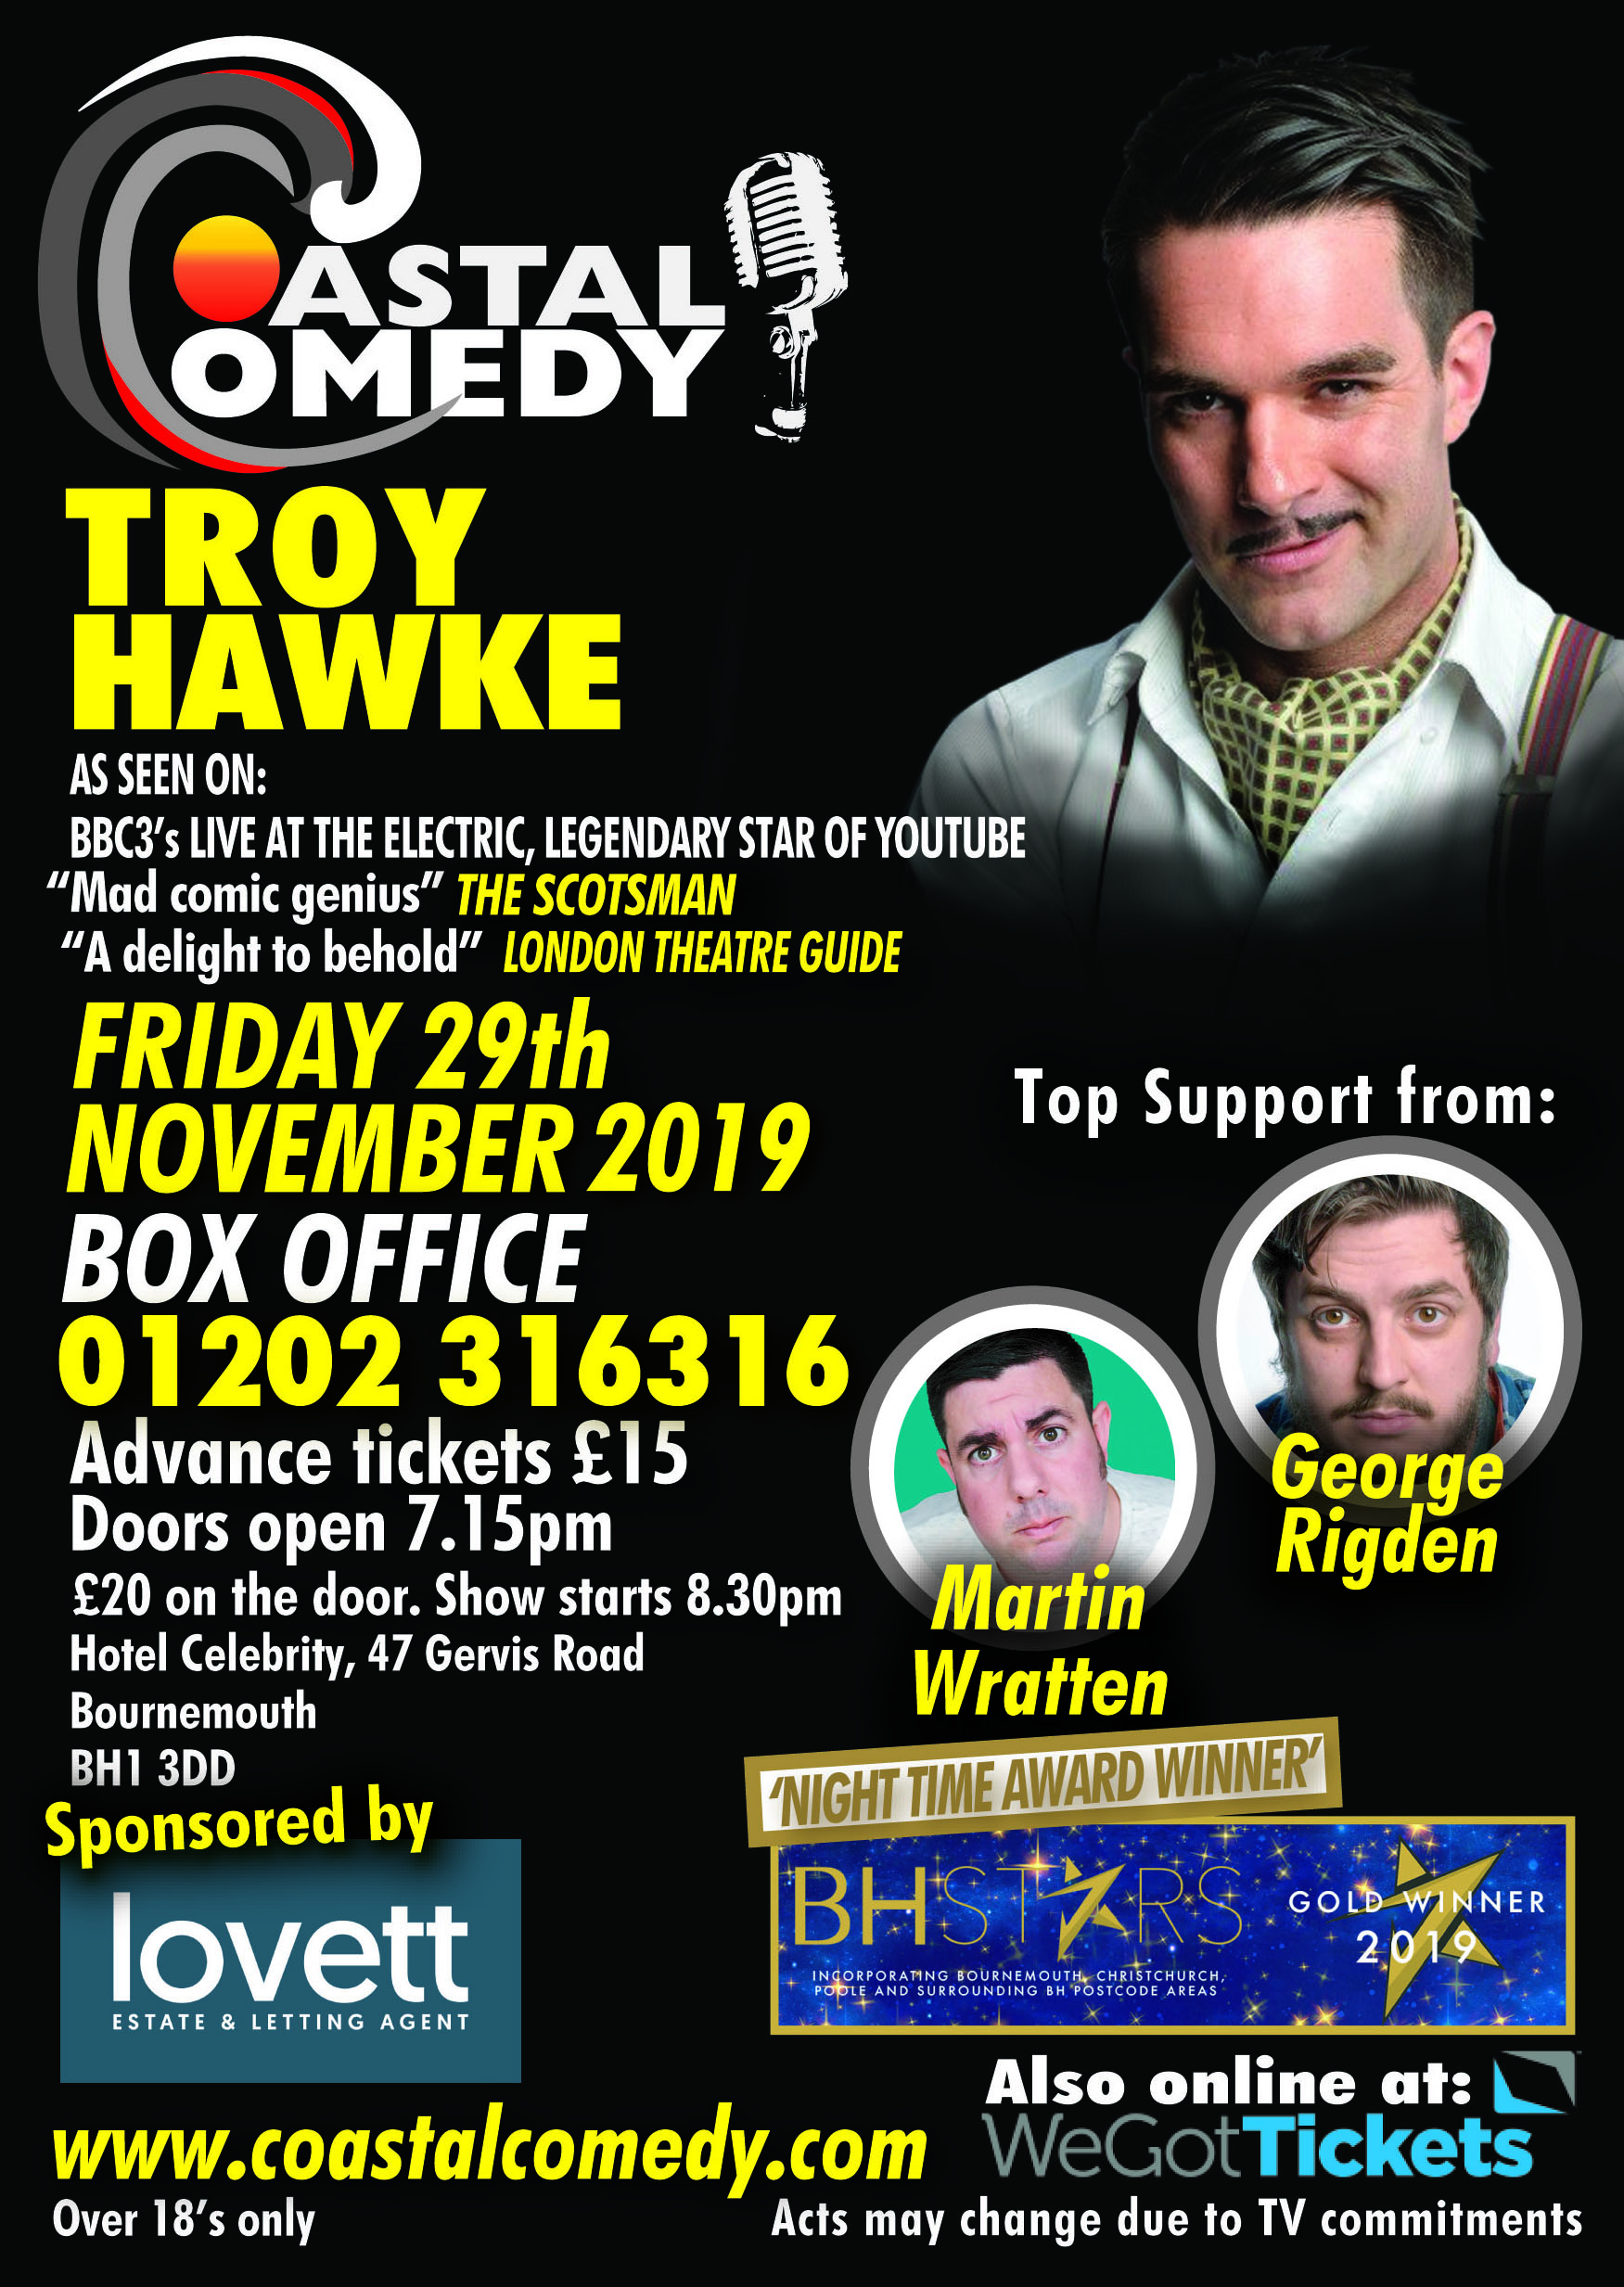 troy hawke, bournemouth, comedy, standup, whatson, entertainment, 25th October, dorset, standup, comedy club, lol, laugh out loud,